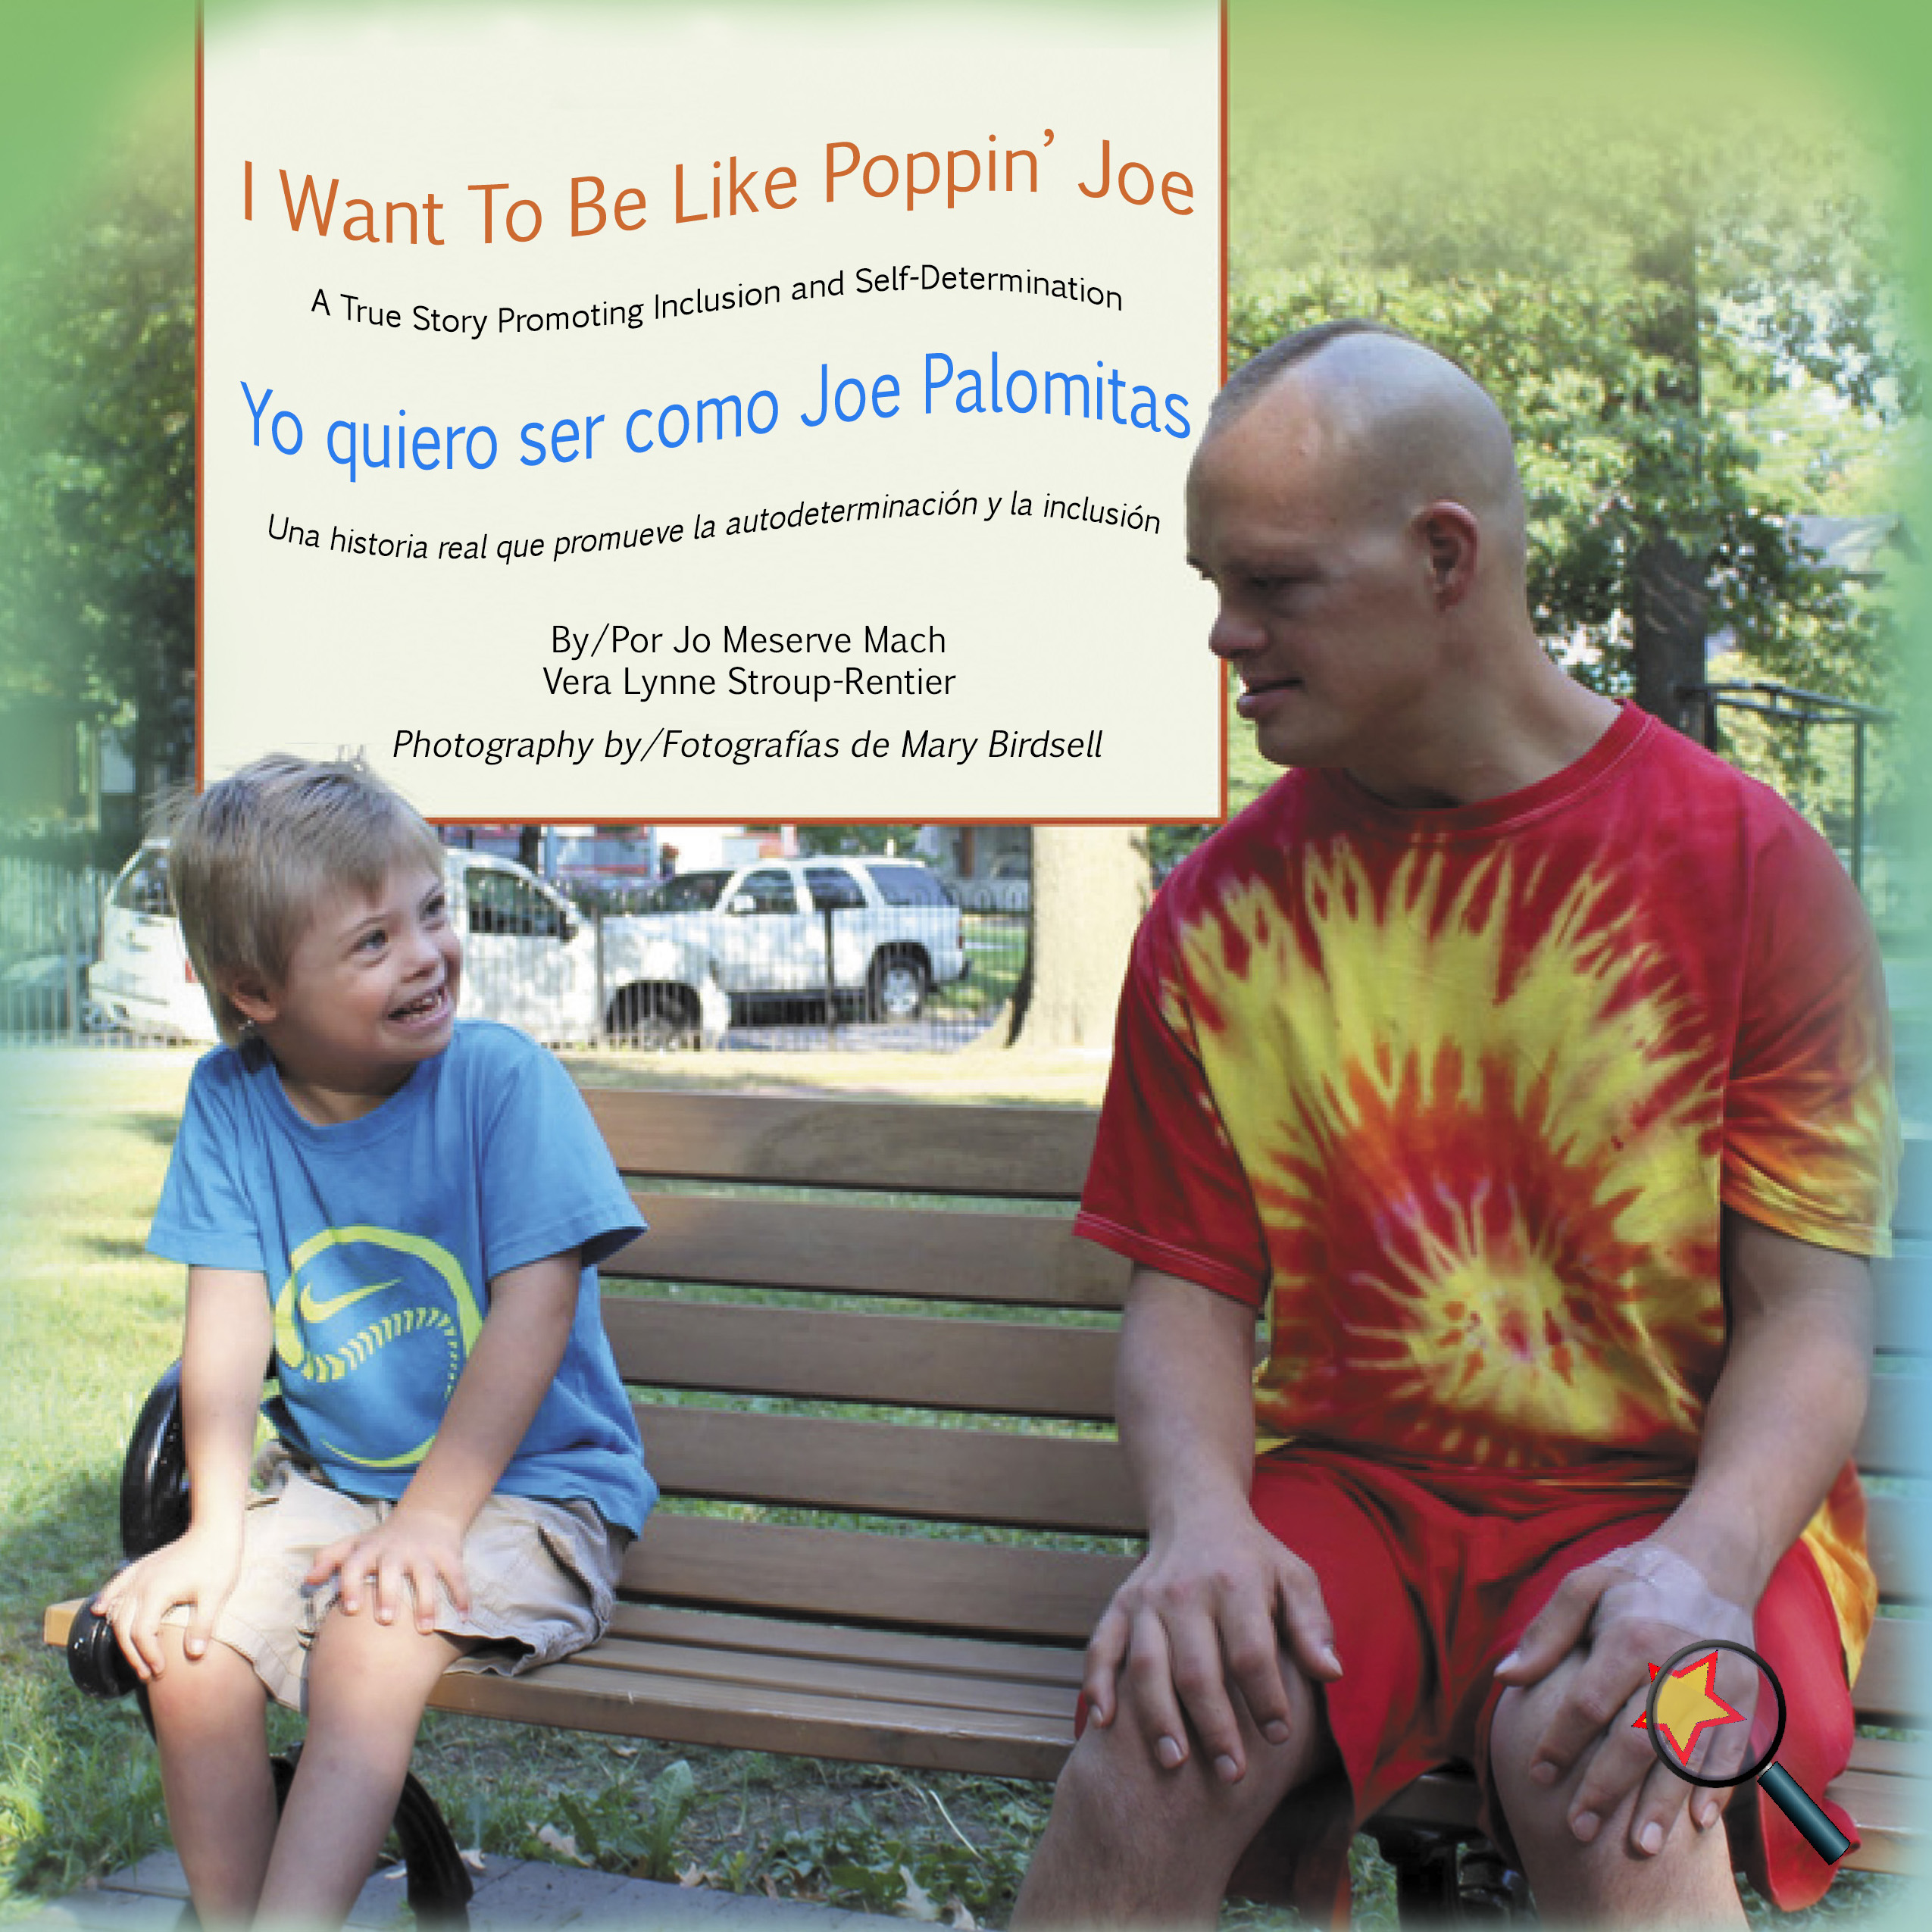 I Want To Be Like Poppin' Joe/Yo quiero ser como Joe Palomitas